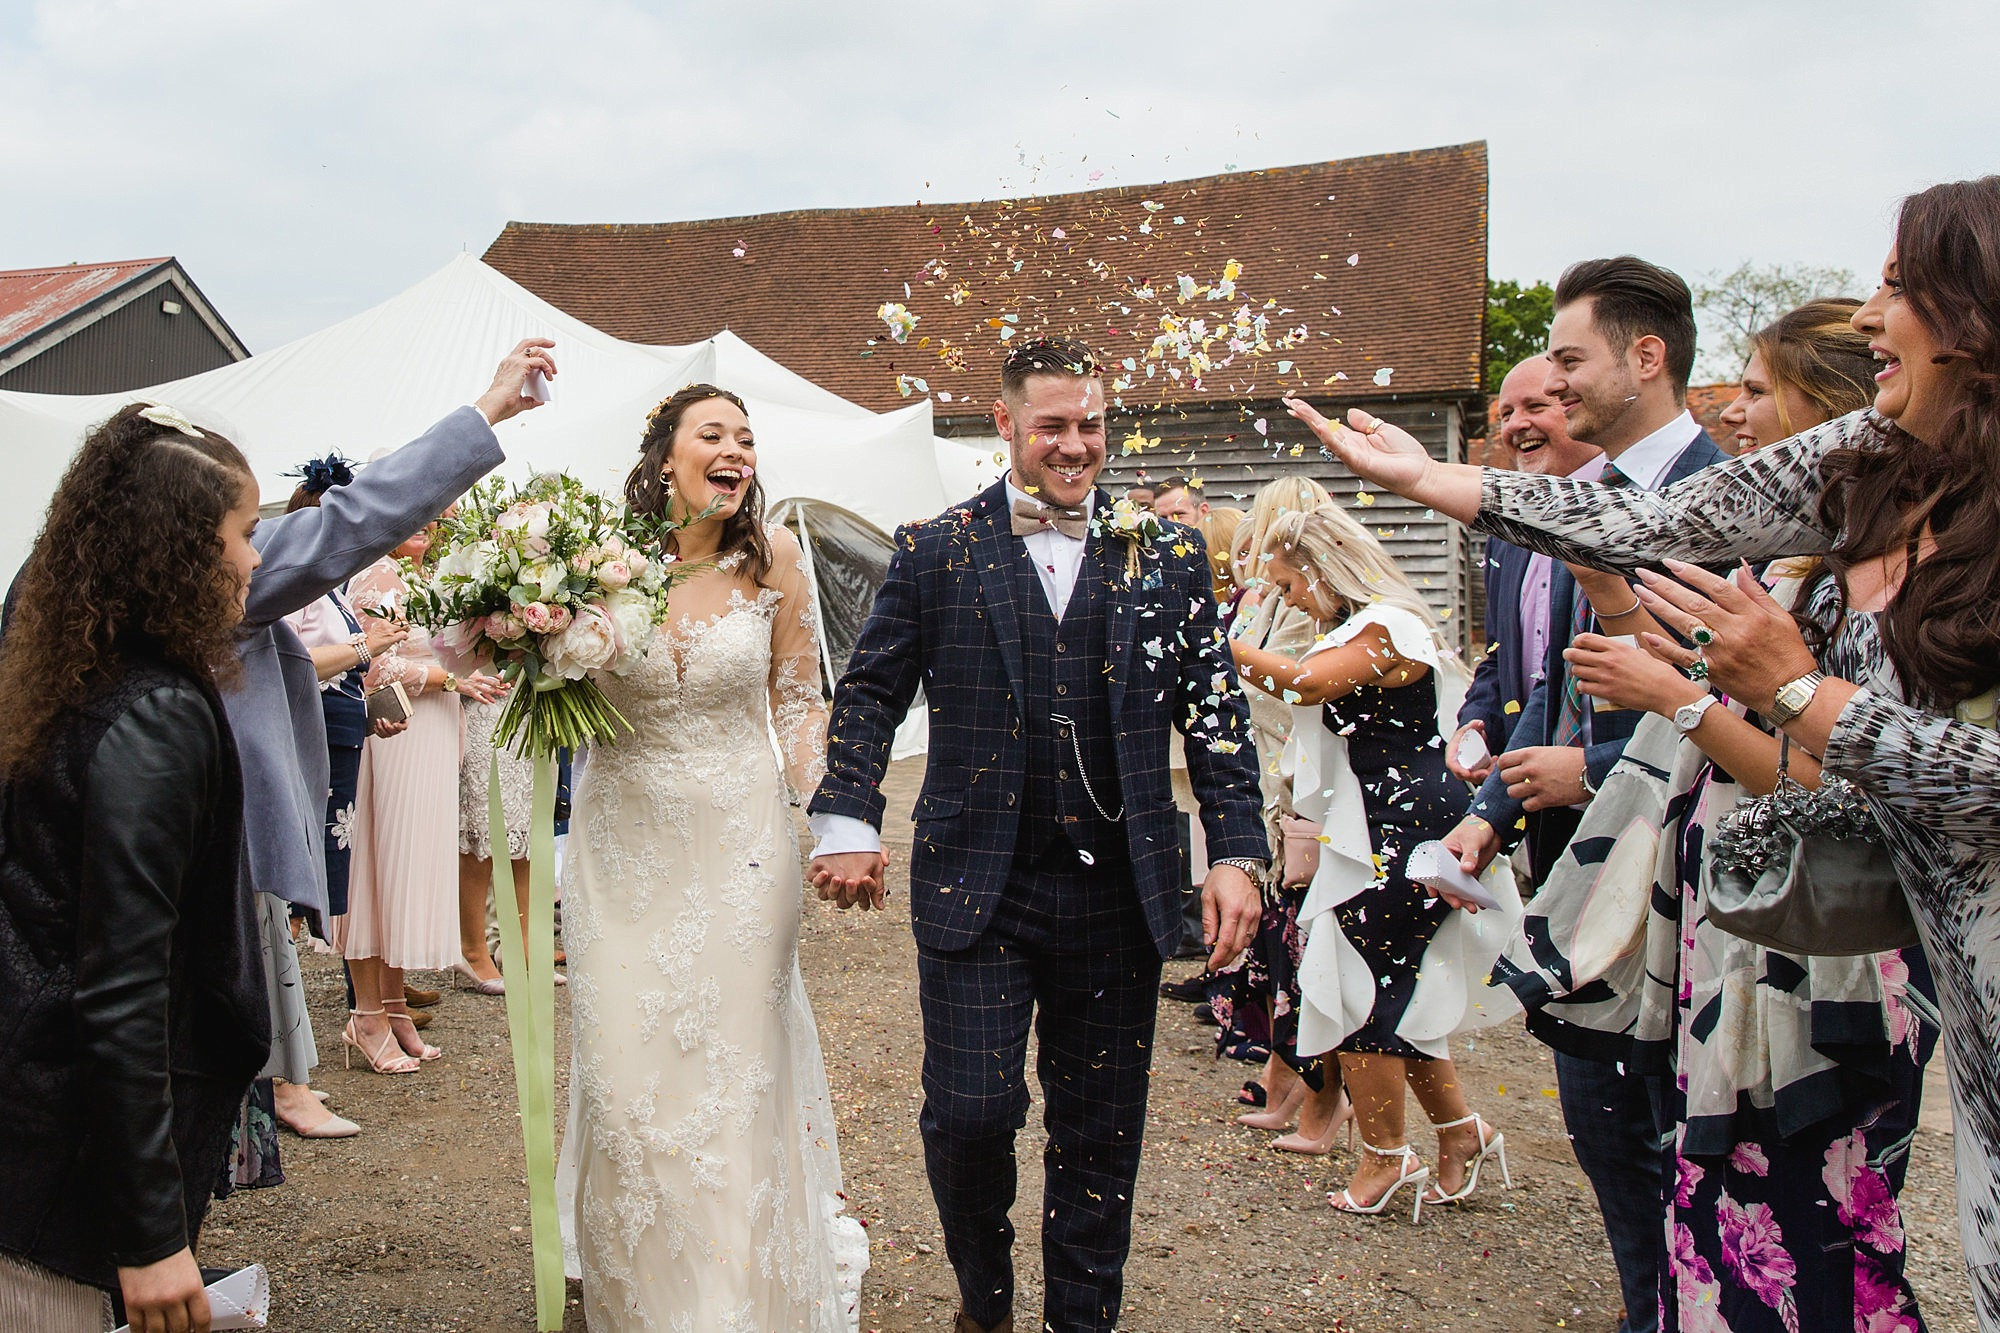 guests thrown confetti over bride and groom at humanist wedding old greens barn